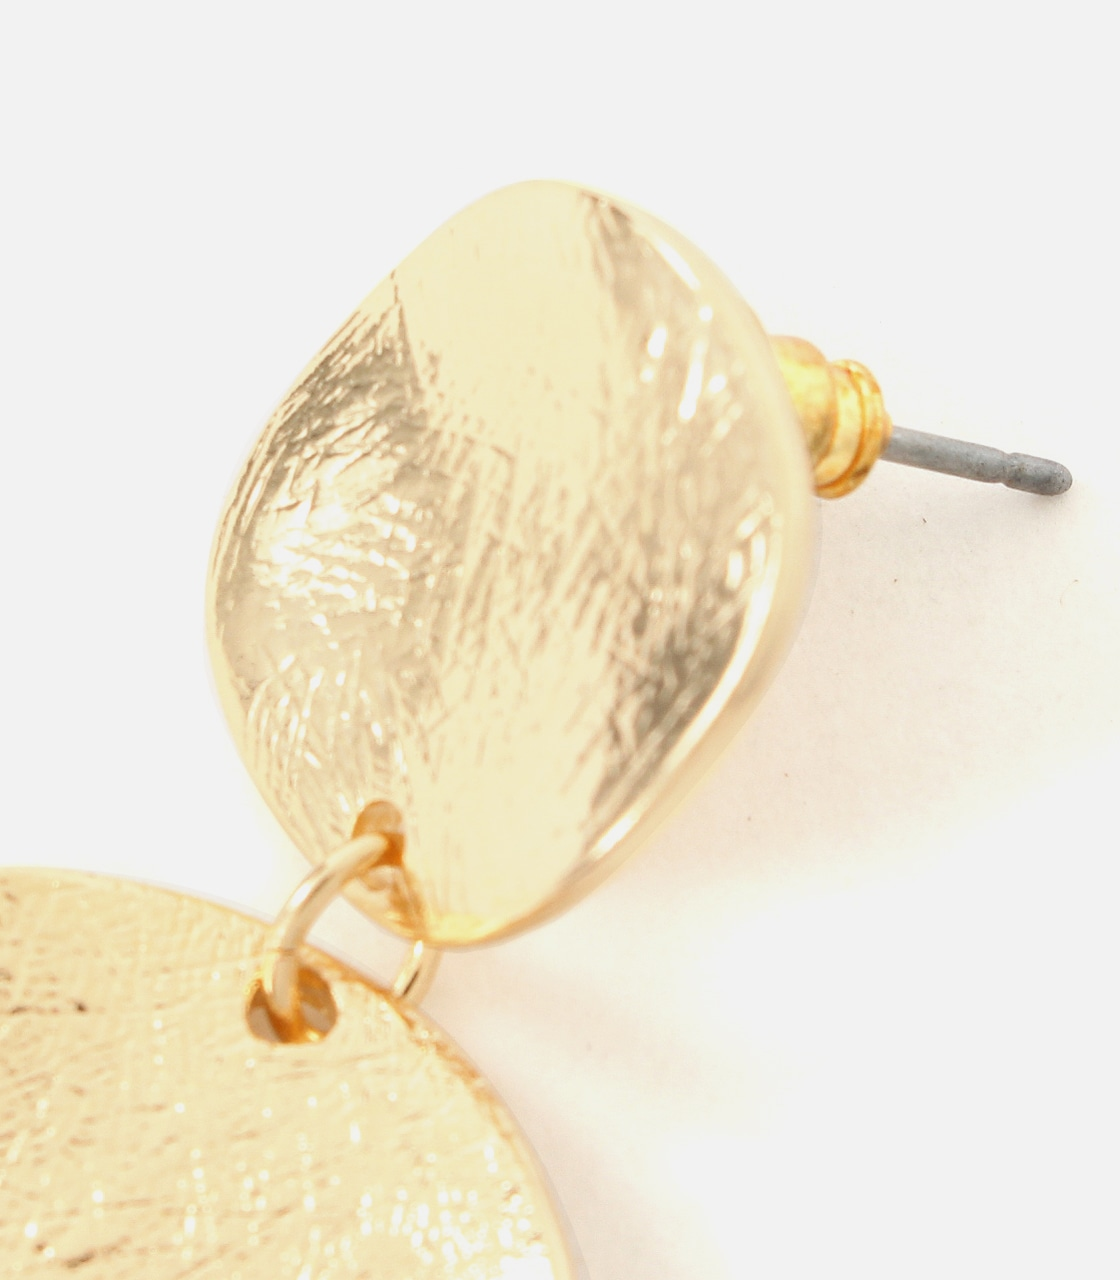 【AZUL BY MOUSSY】BUMPY MERAL ROUND EARRINGS 詳細画像 L/GLD 6